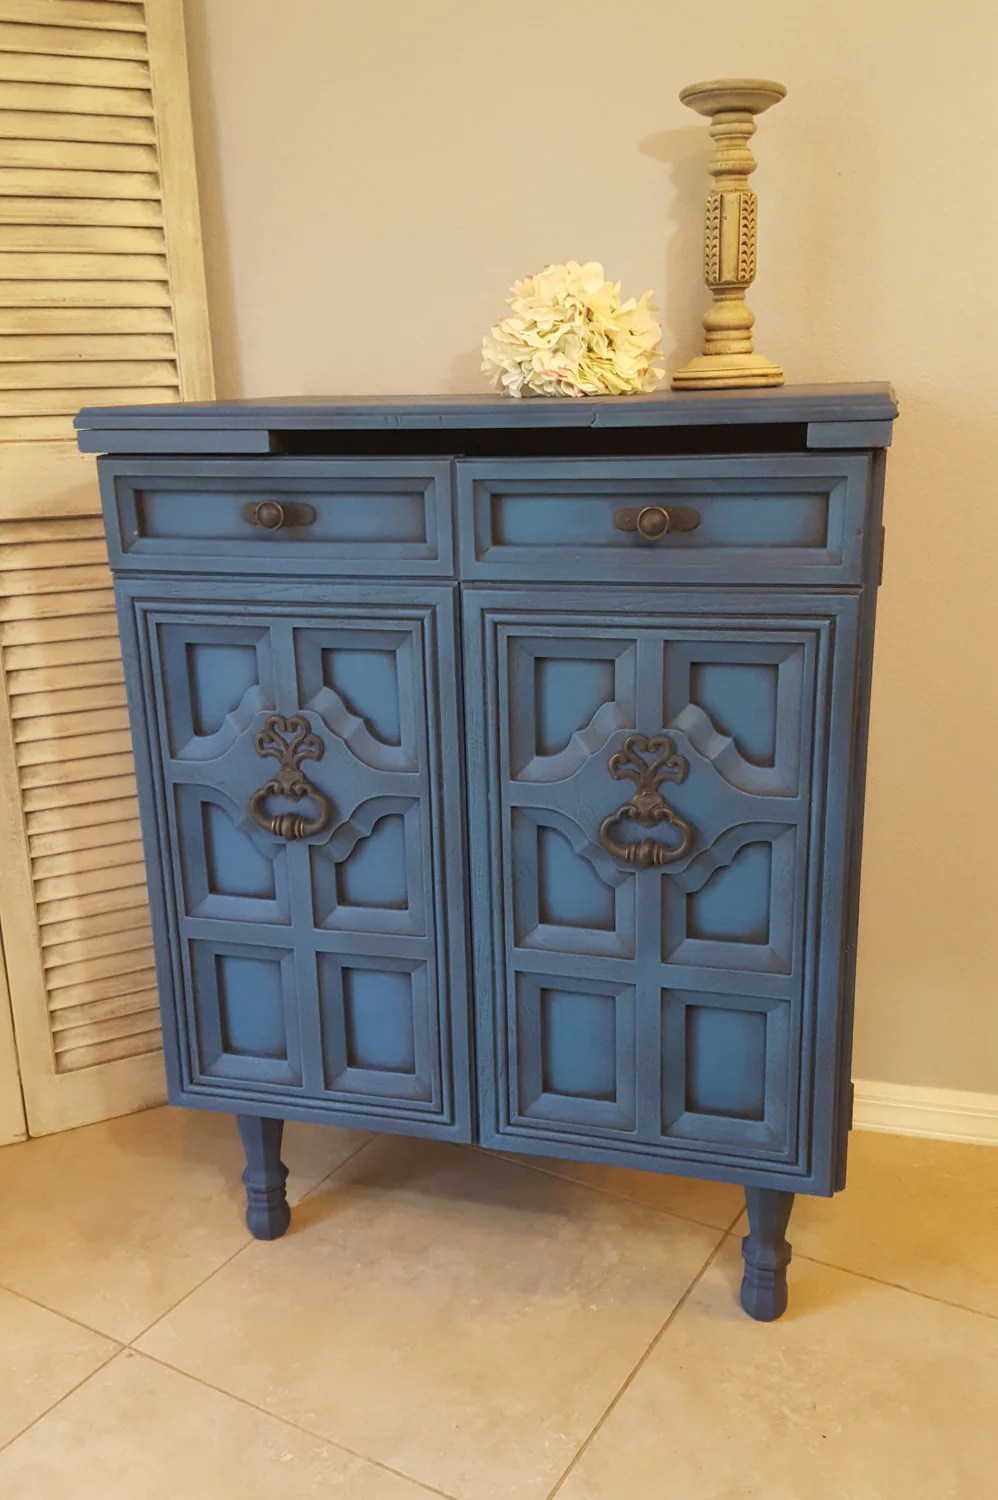 Barschrank Vintage Sold Vintage Bar Cabinet Re Purposed Bar Cart Hand Painted And Distressed In Layers Of Vibrant Blues Over Black